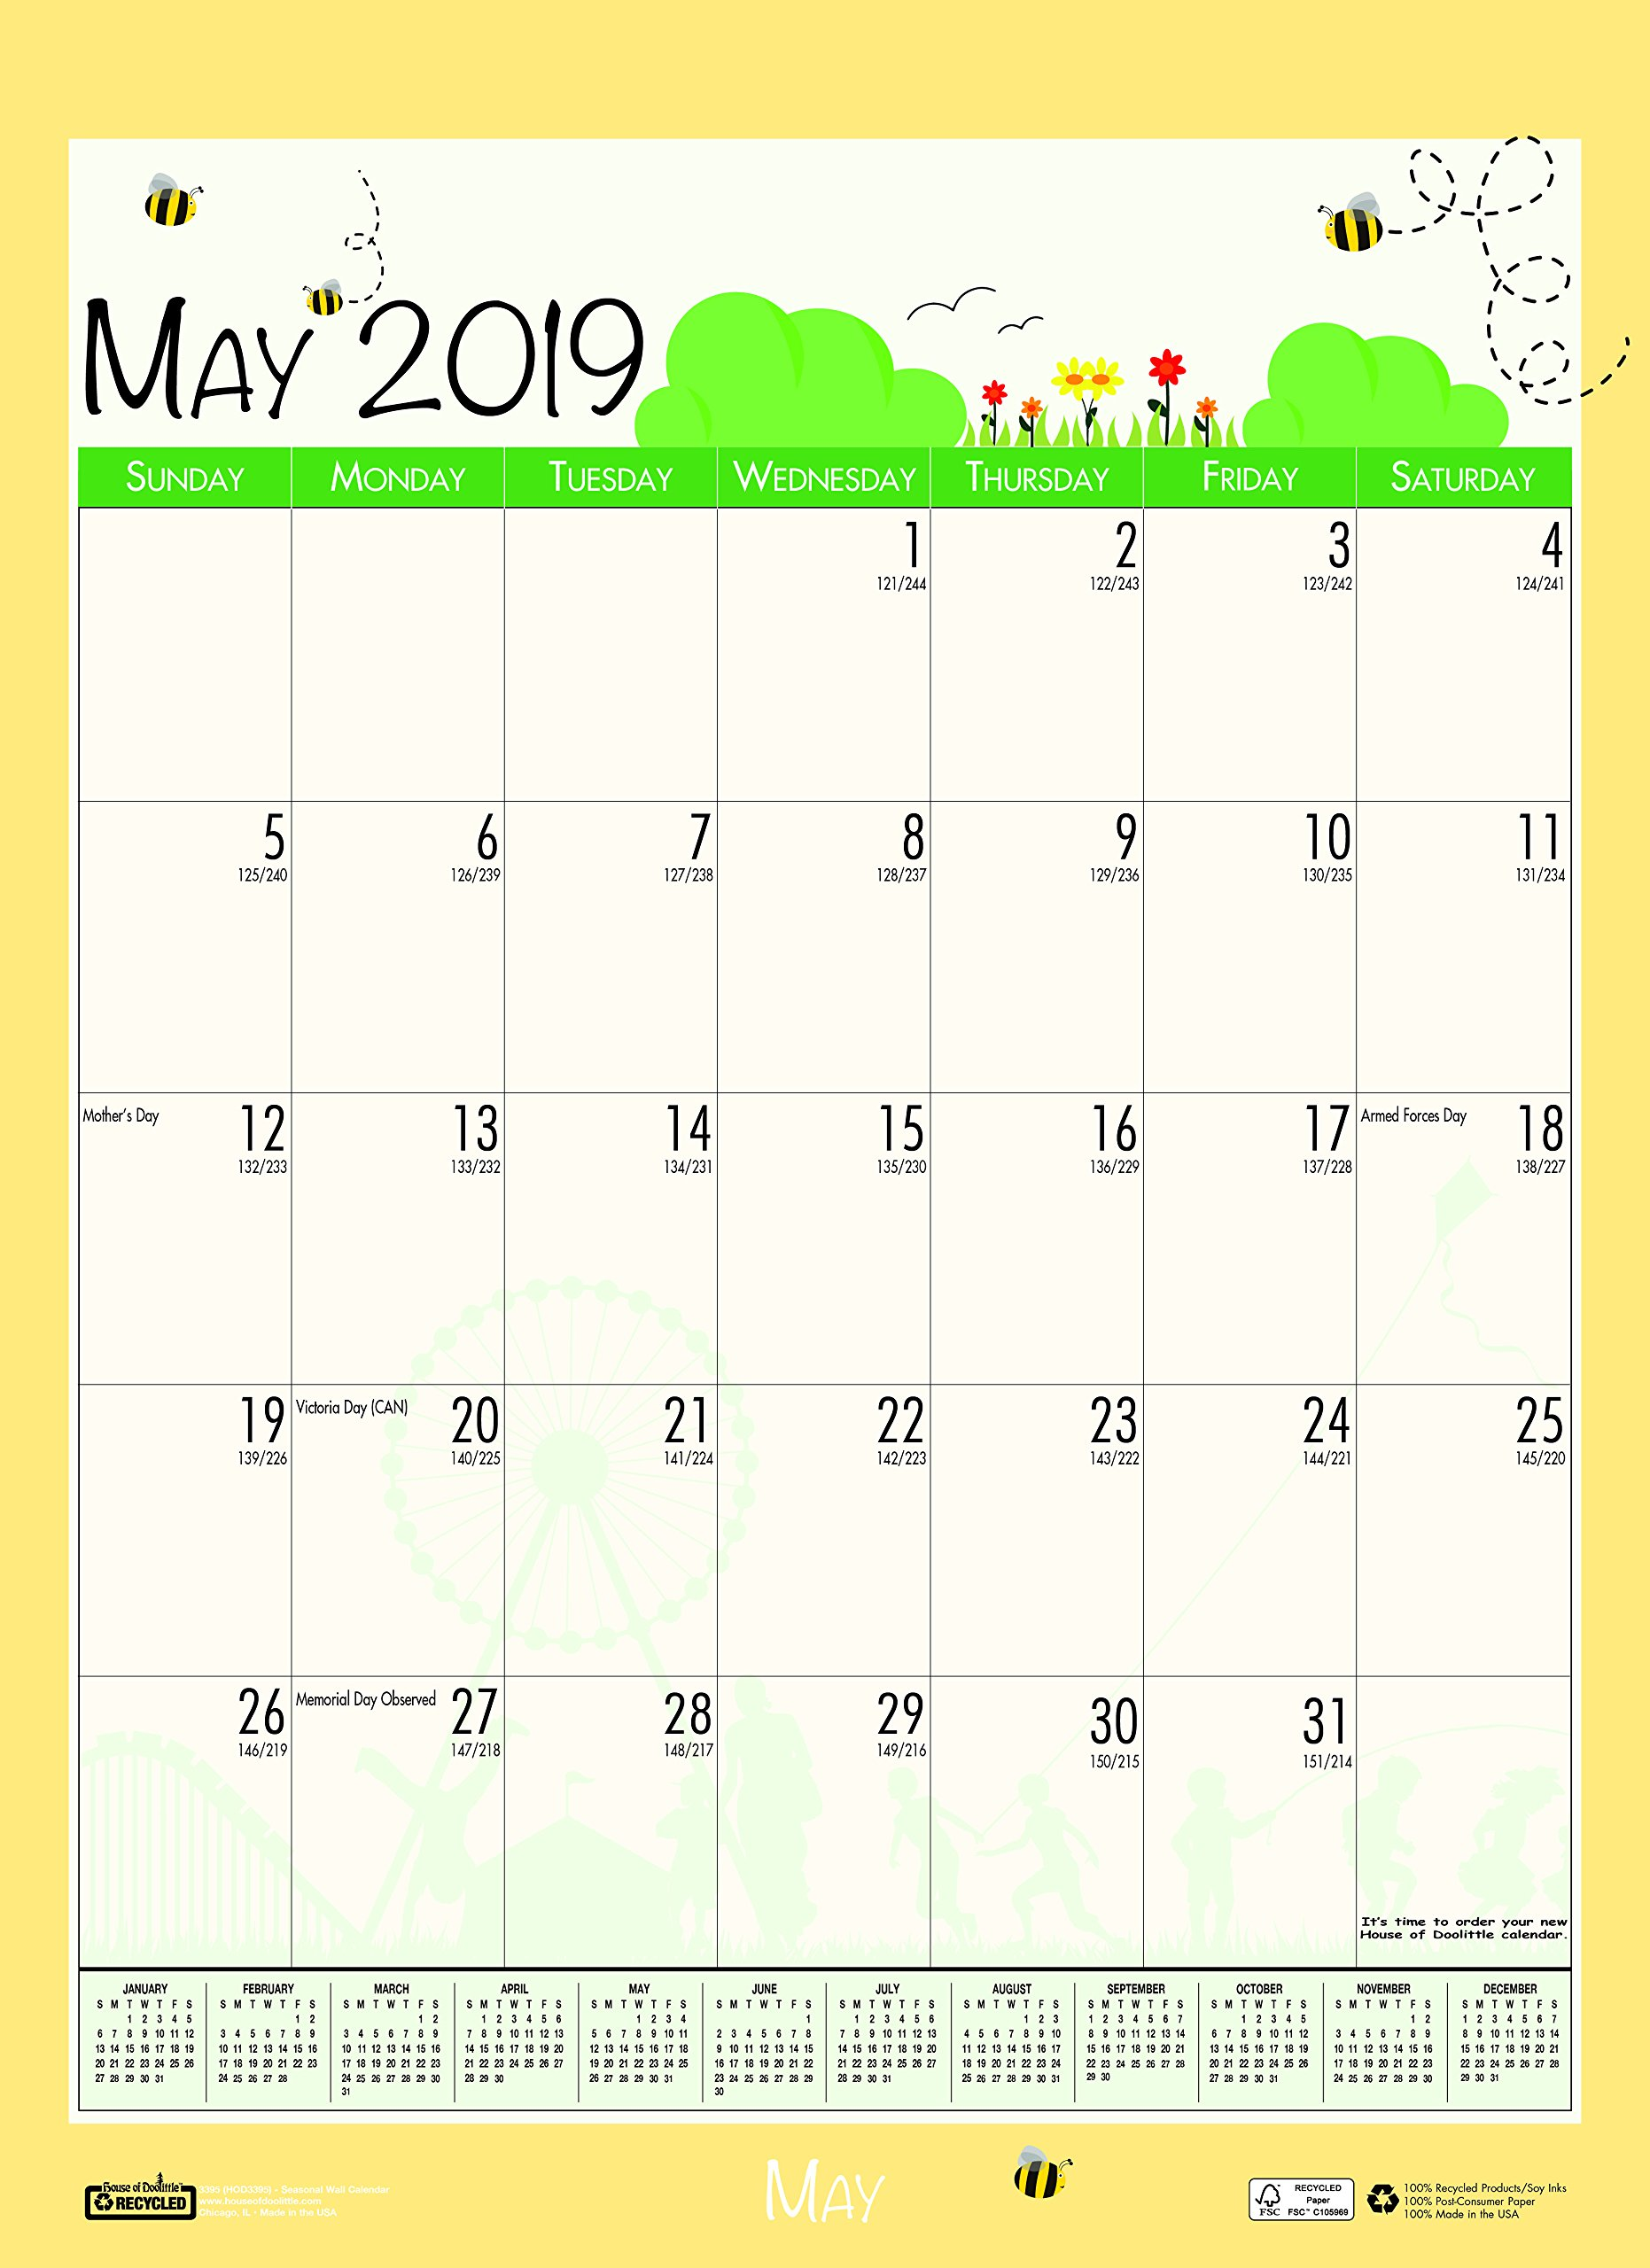 House of Doolittle 2018-2019 Monthly Seasonal Wall Calendar, Academic, 12 x 16.5 Inches, July - June, Case of 24 (HOD3395PK-19) by House of Doolittle (Image #8)